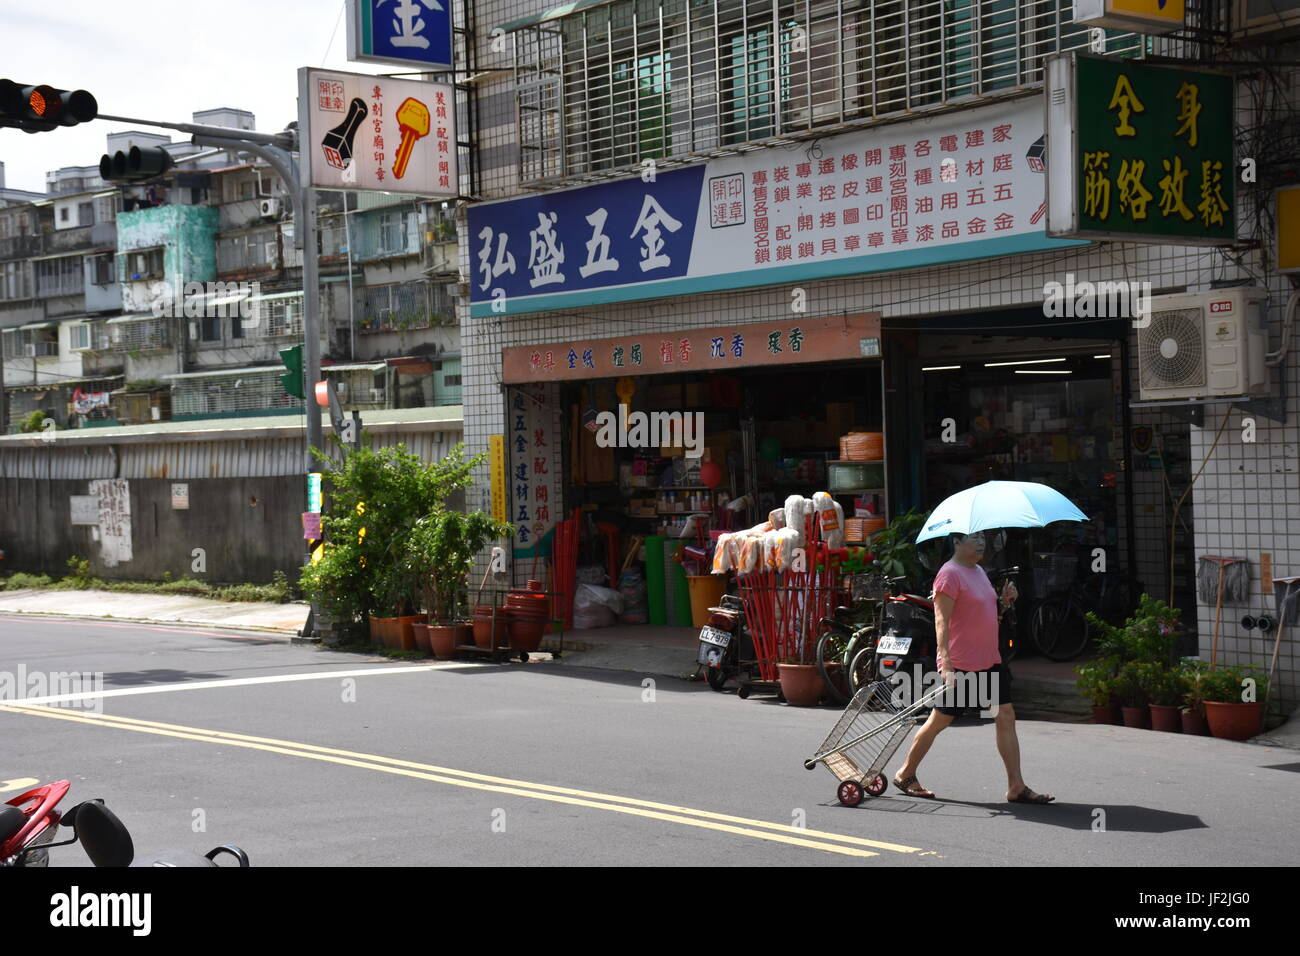 Old woman pulling basket behind her in road near store in New Taipei City. Hot summer day. - Stock Image